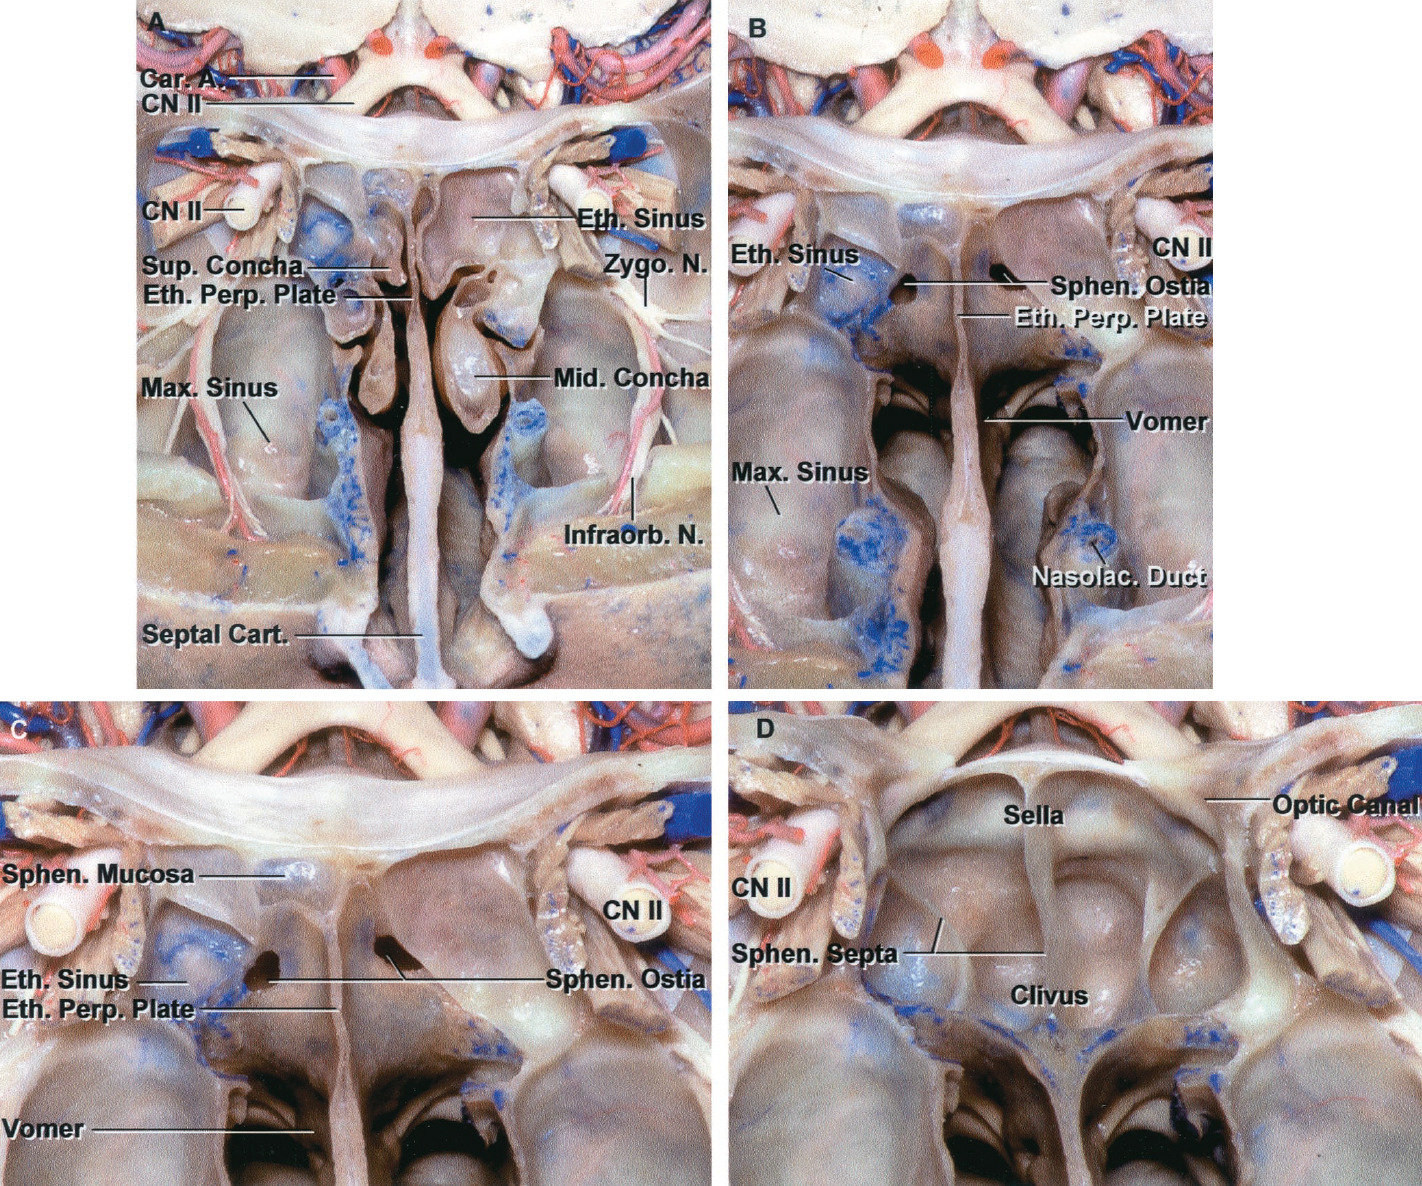 Figure 8.4 (A–D). Transnasal route to the sphenoid sinus and sella. A, the cross section extends across the nasal cavity, superior and middle turbinates, maxillary sinuses, the orbits near the apex and the ethmoidal sinuses in front of the sphenoid sinus. The zygomatic and infraorbital nerves arise from the maxillary nerve in the pterygopalatine fossa, which is located behind the posterior maxillary wall. The nasal septum is formed above by the perpendicular ethmoid plate, below by the vomer, and anteriorly by the cartilaginous septum. B, the concha and posterior ethmoid air cells have been removed to expose the vomer and the anterior wall of the sphenoid sinus and the sphenoid ostia. The nasolacrimal duct descends along the lateral wall of the nasal cavity. C, enlarged view. The perpendicular ethmoid plate joins the anterior sphenoid face, and the vomer extends upward to join the inferior sphenoid wall, both in the midline. The posterior ethmoid air cells are located anterior to the lateral part of the sphenoid face and overlap the superolateral margins of the sphenoid ostia. D, the anterior face of the sphenoid has been removed to expose the multiseptated sphenoid sinus and the anterior wall of the sella. The bony prominences over the optic canals are situated in the superolateral margins of the sinus. A., artery; Car., carotid; Cart., cartilage; Cav., cavernous; CN, cranial nerve; Eth., ethmoid; Gang., ganglion; Hyp., hypophyseal; Infraorb., infraorbital; Max., maxillary; Mid., middle; N., nerve; Nasolac., nasolacrimal; Ophth., ophthalmic; Perp., perpendicular; Pet., petrous; Pit., pituitary; Proc., process; Pteryg., pterygoid; Pterygopal., pterygopalatine; Seg., segment; Sept., septal; Sphen., sphenoid; Sup., superior. (Images courtesy of AL Rhoton, Jr.)